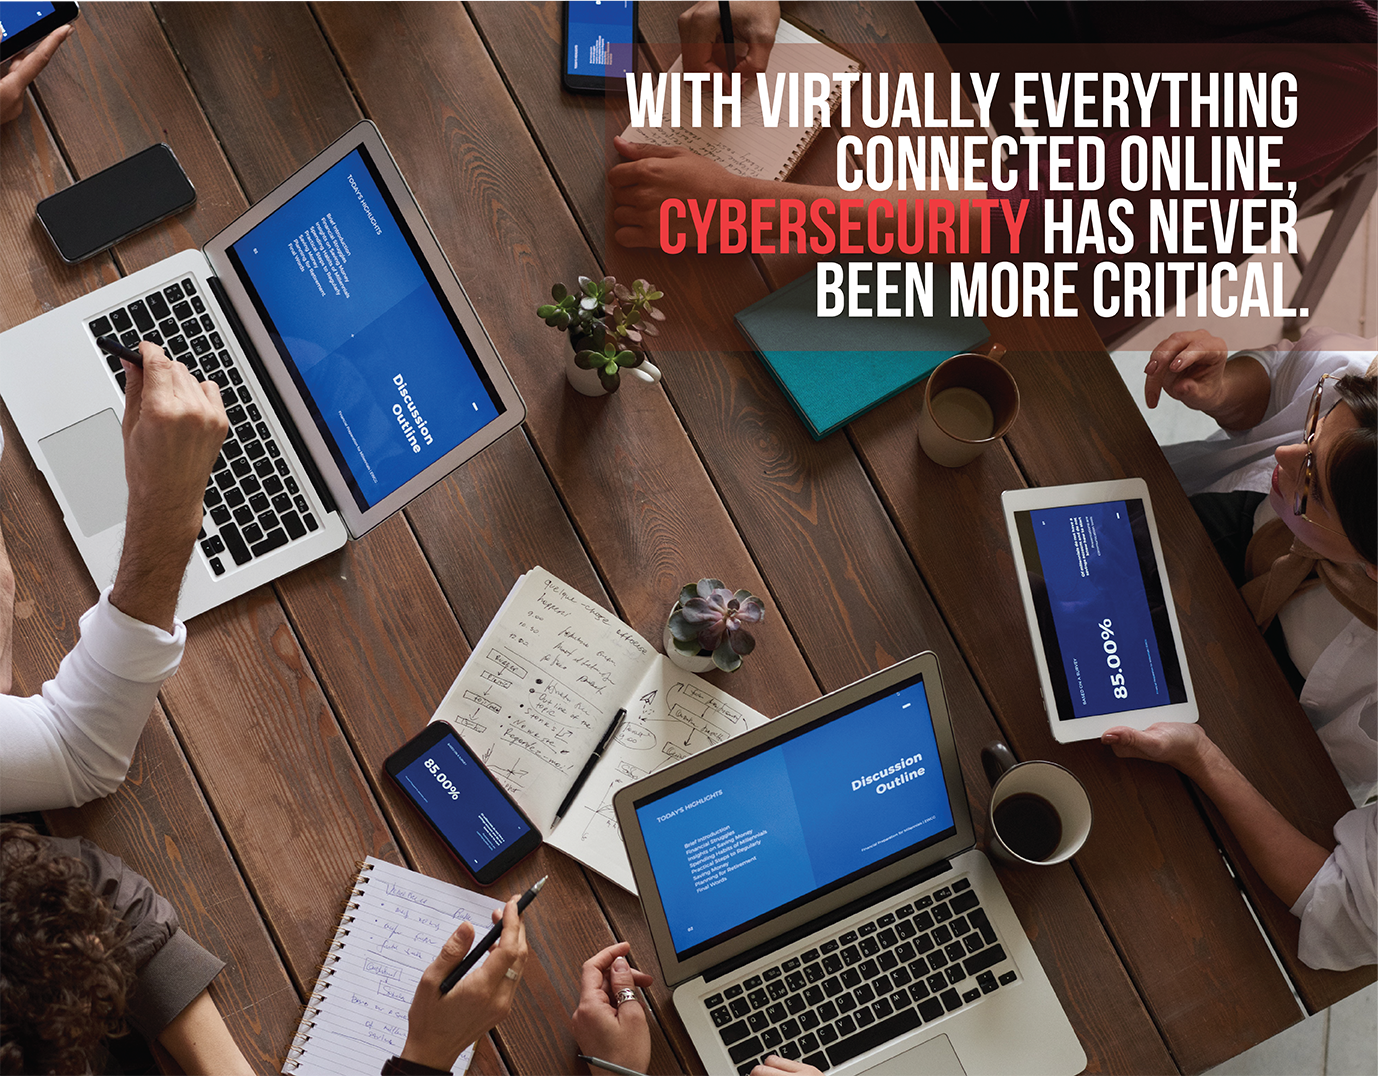 7 Top Cybersecurity Threats For Businesses In 2021 [& how to prevent them]